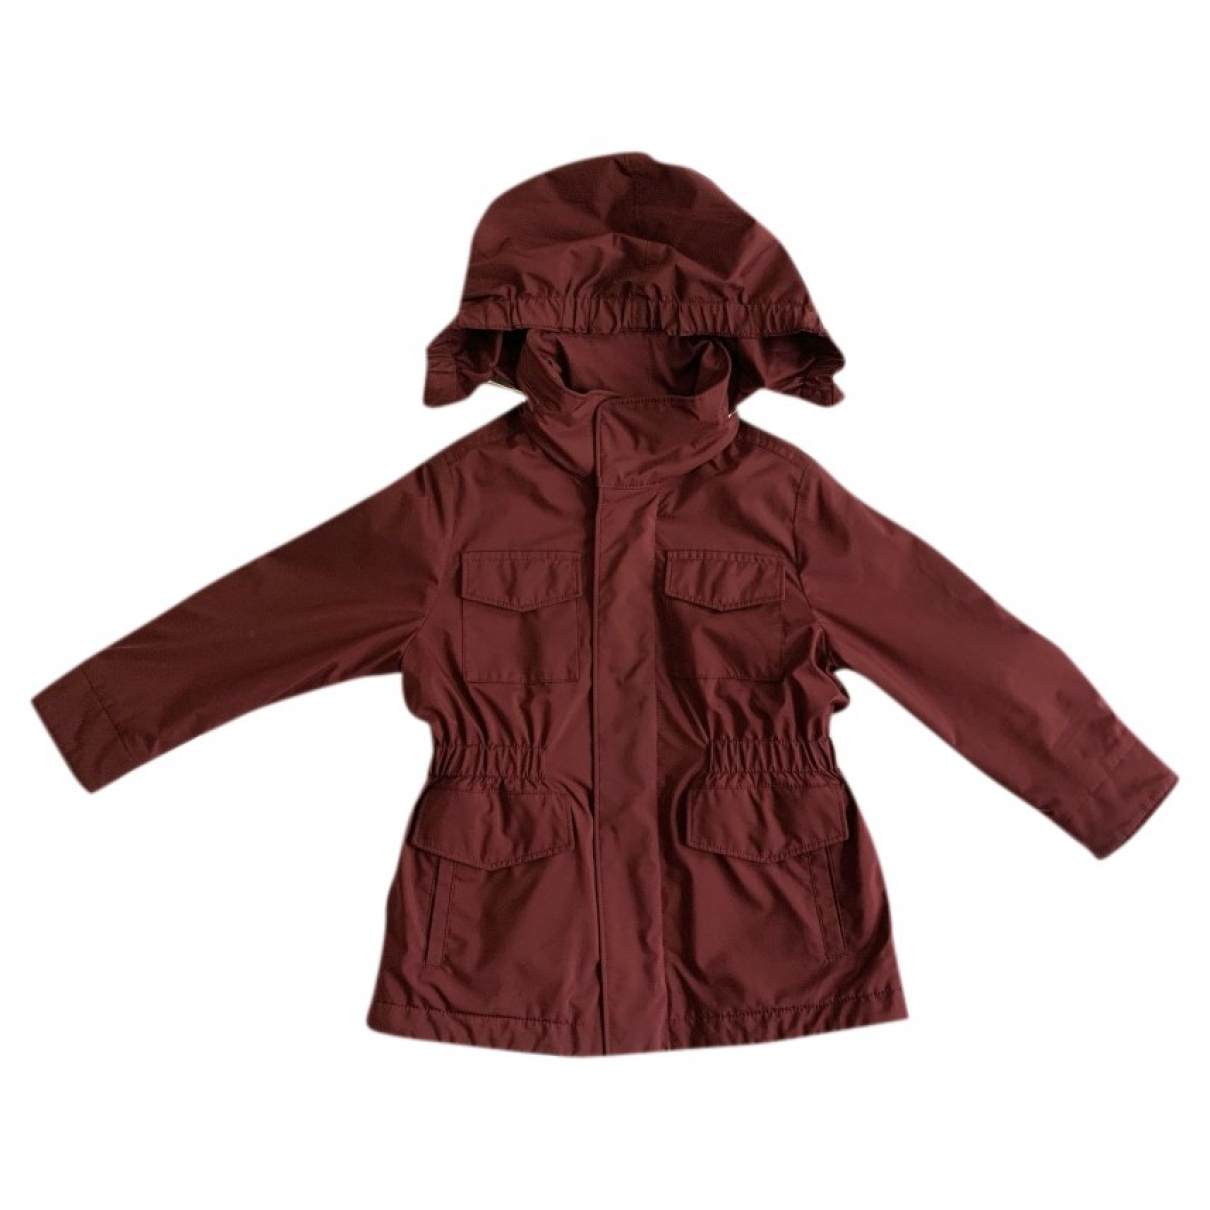 Loro Piana \N Burgundy Cashmere jacket & coat for Kids 2 years - until 34 inches UK